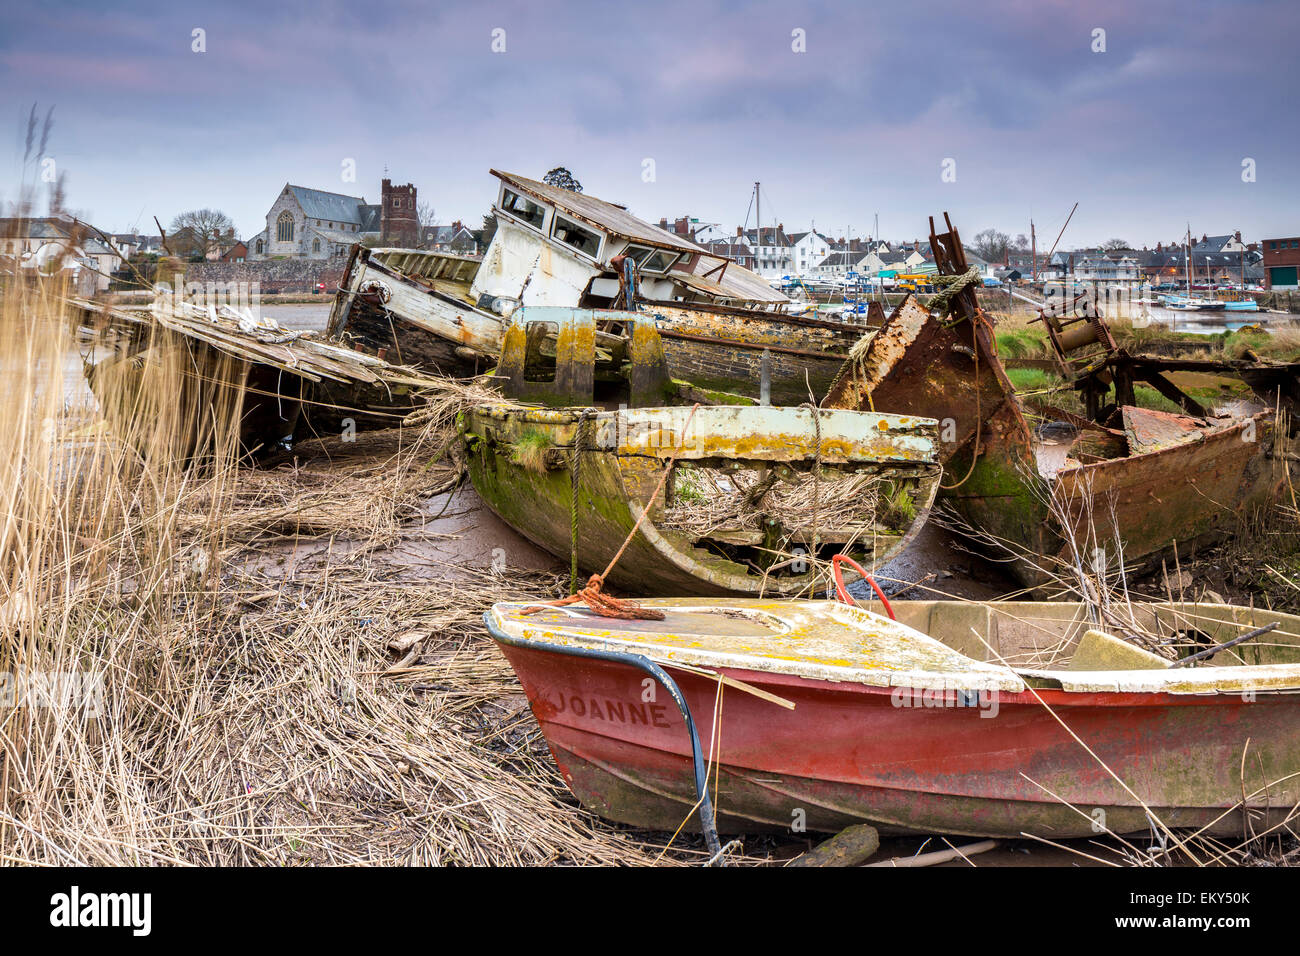 Old boats at low tide on the River Exe at Topsham, Devon, England, United Kingdom, Europe. - Stock Image